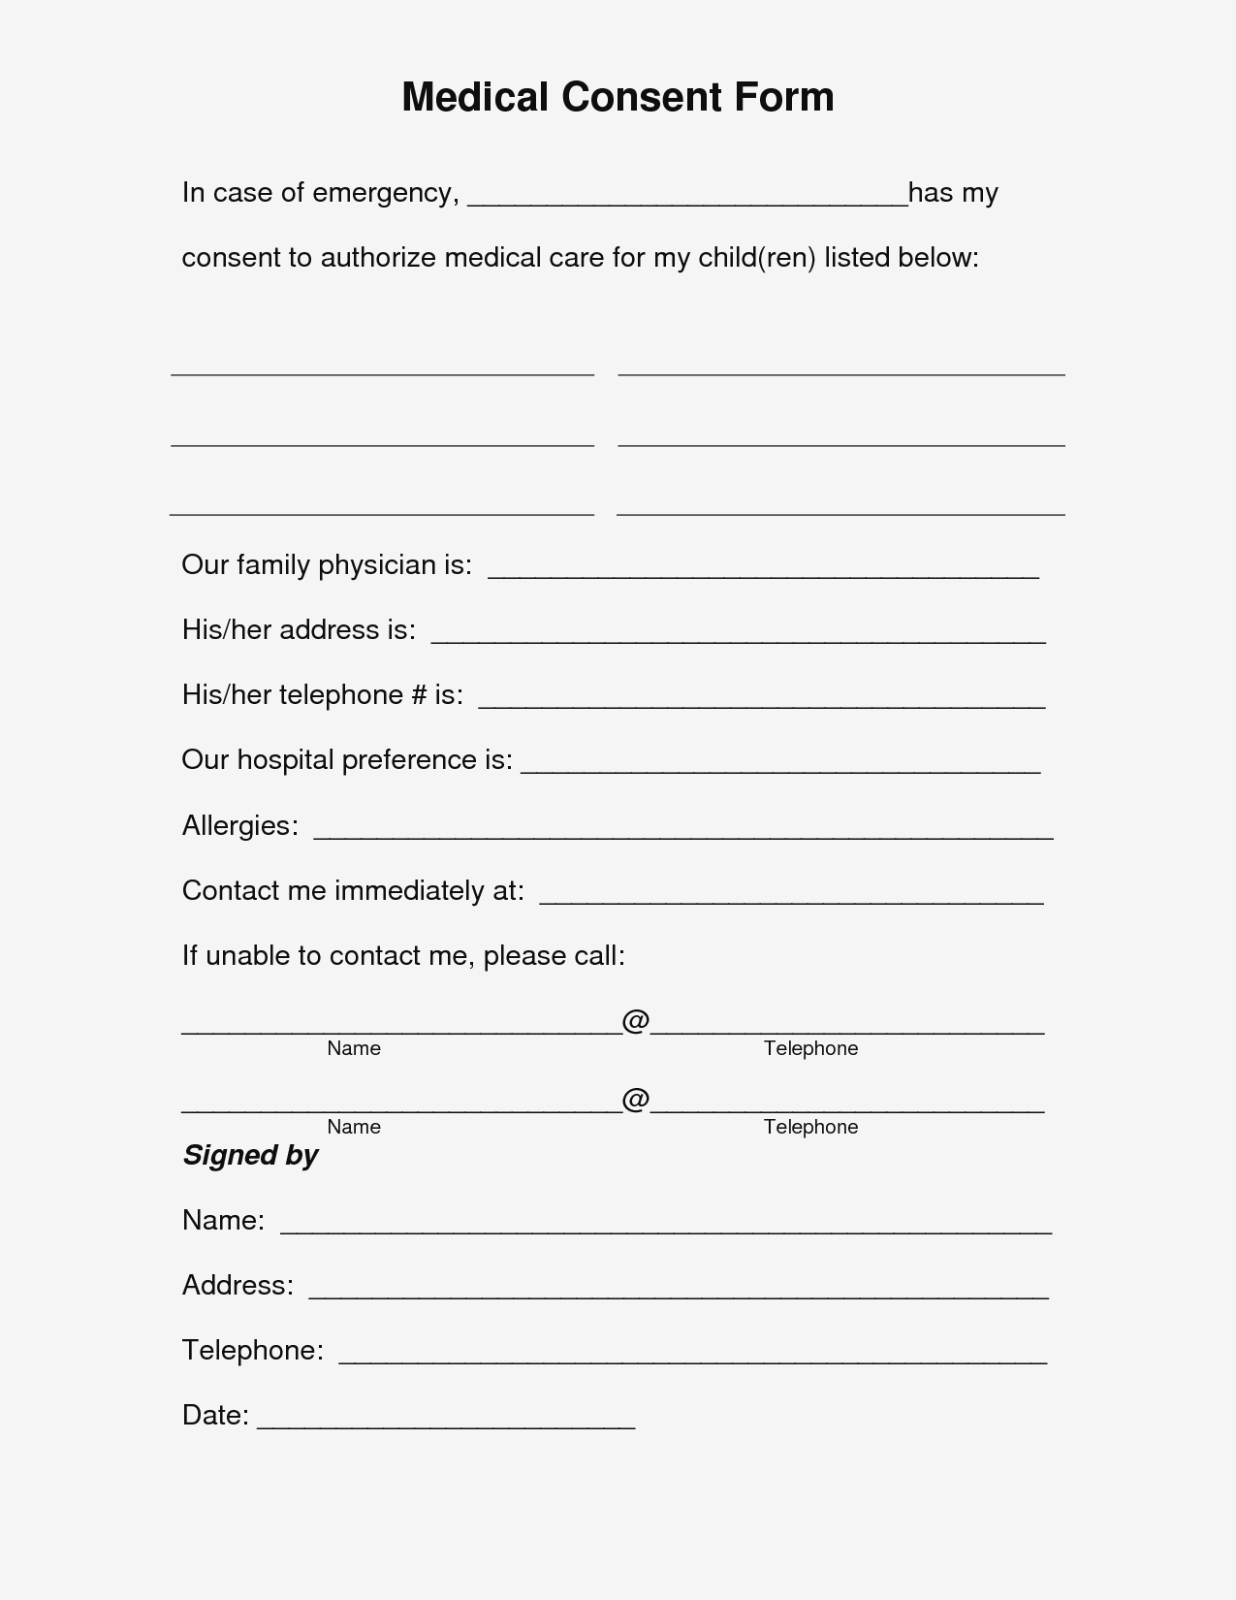 Free Printable Medical Consent Form   Free Medical Consent Form - Free Printable Parenting Plan